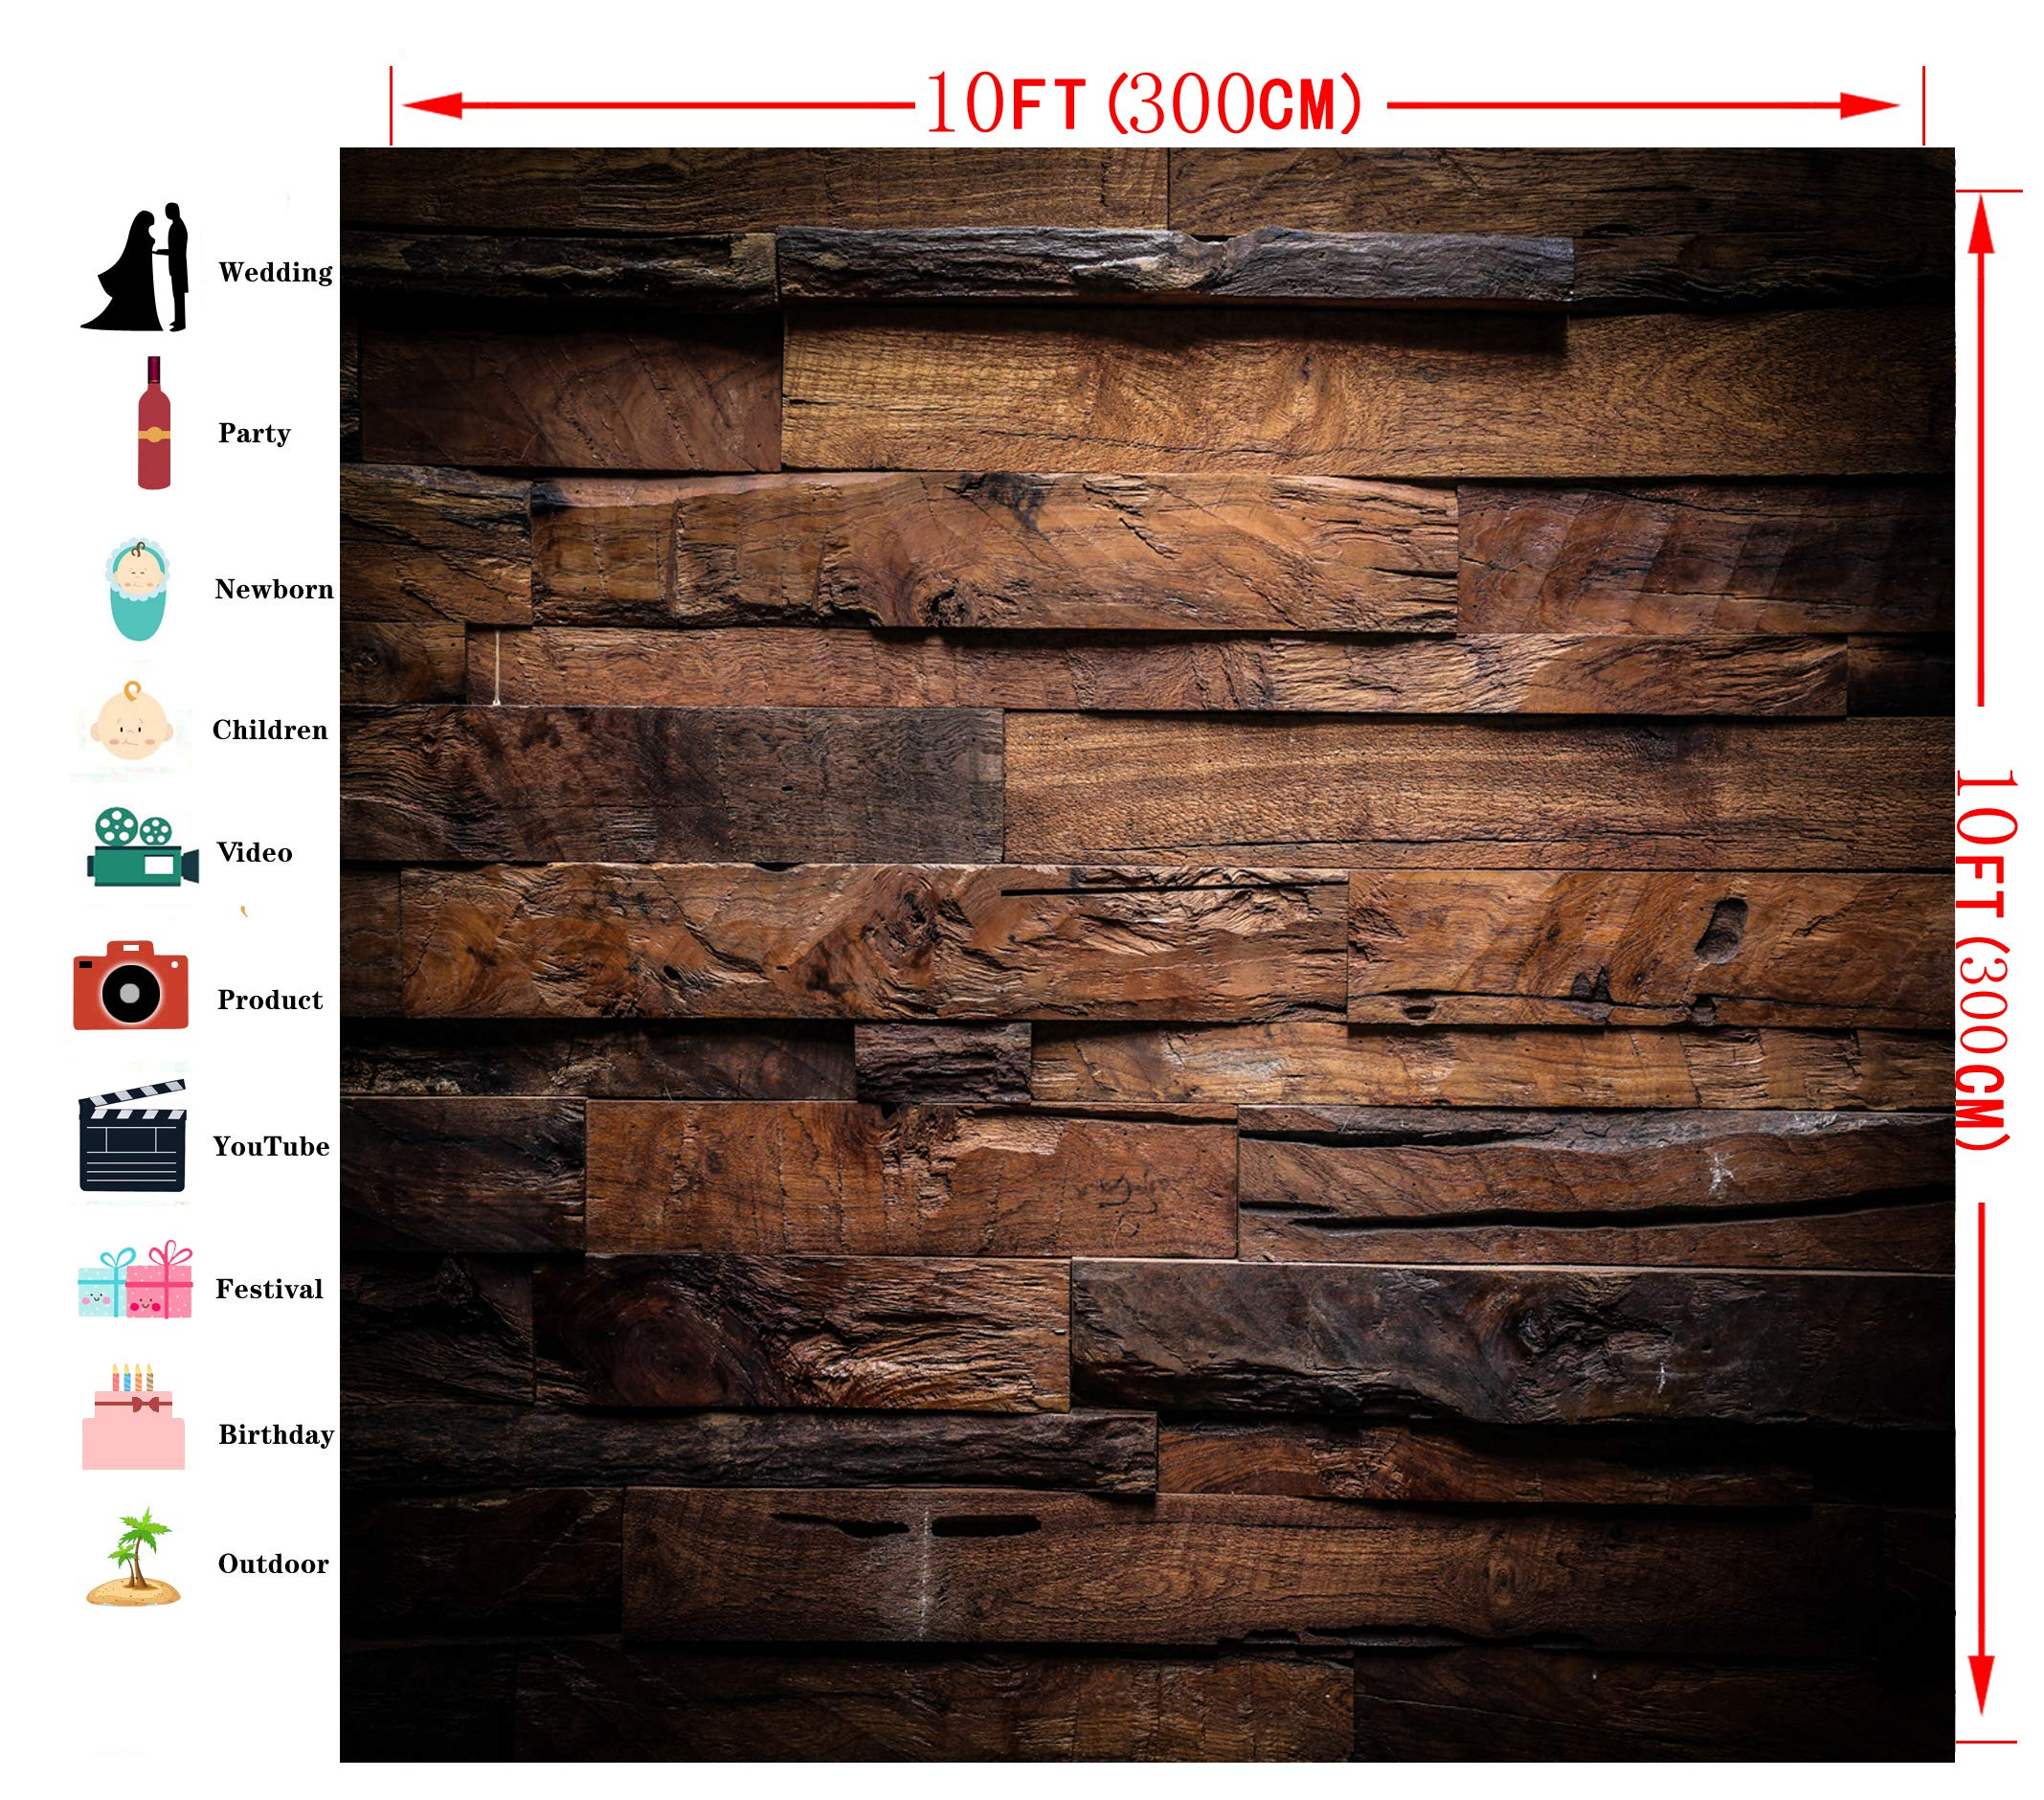 CYLYH 10x10ft Photography Backdrop Brown Wood 3D Backdrops for Picture Customized Vinyl Photo Background D104 by CYLYH (Image #3)